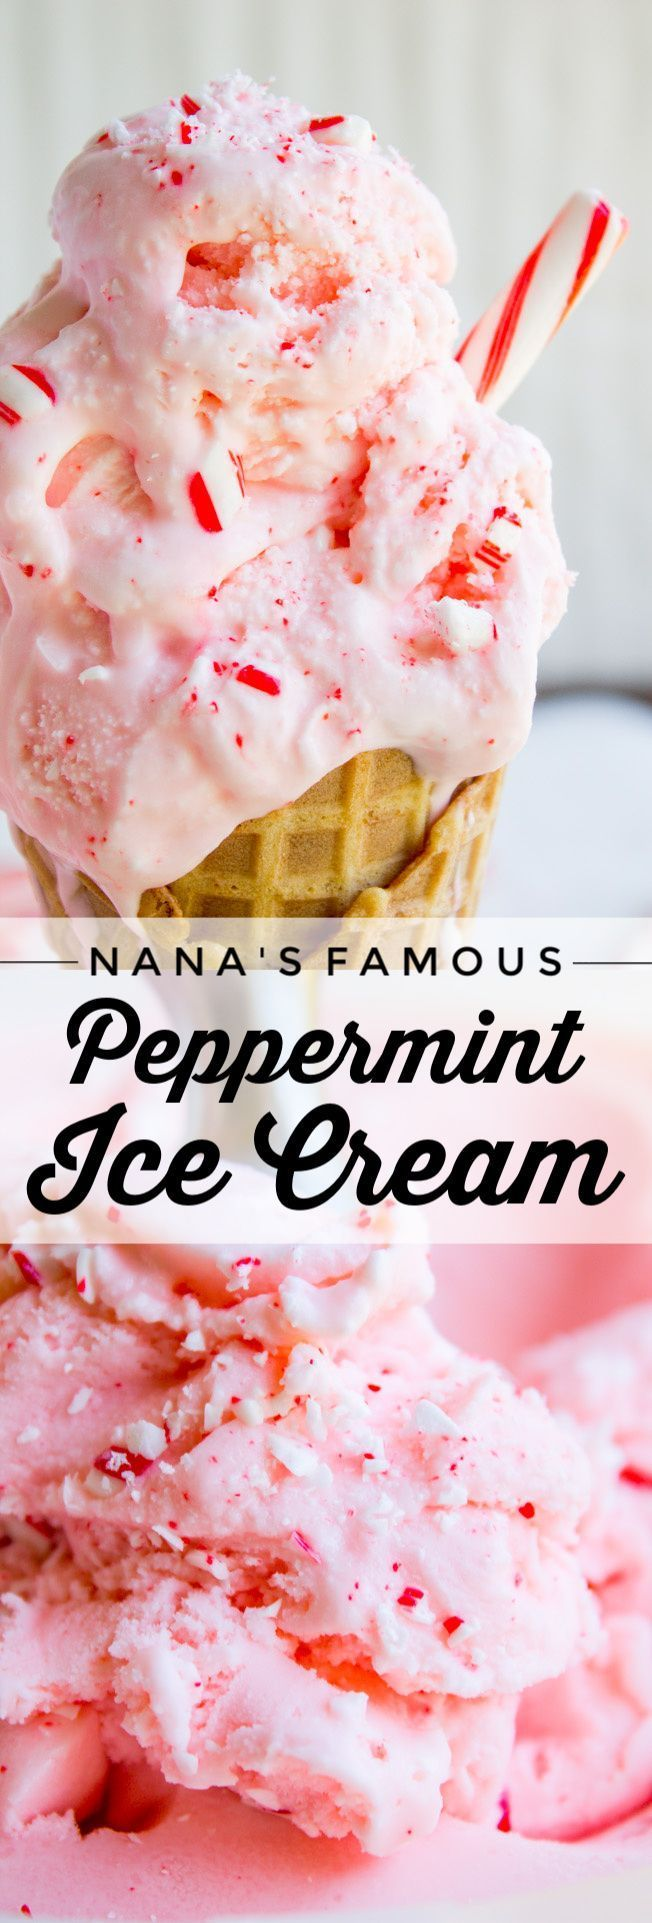 Famous Homemade Peppermint Ice Cream from The Food Charlatan. If you want the BEST and easiest Home